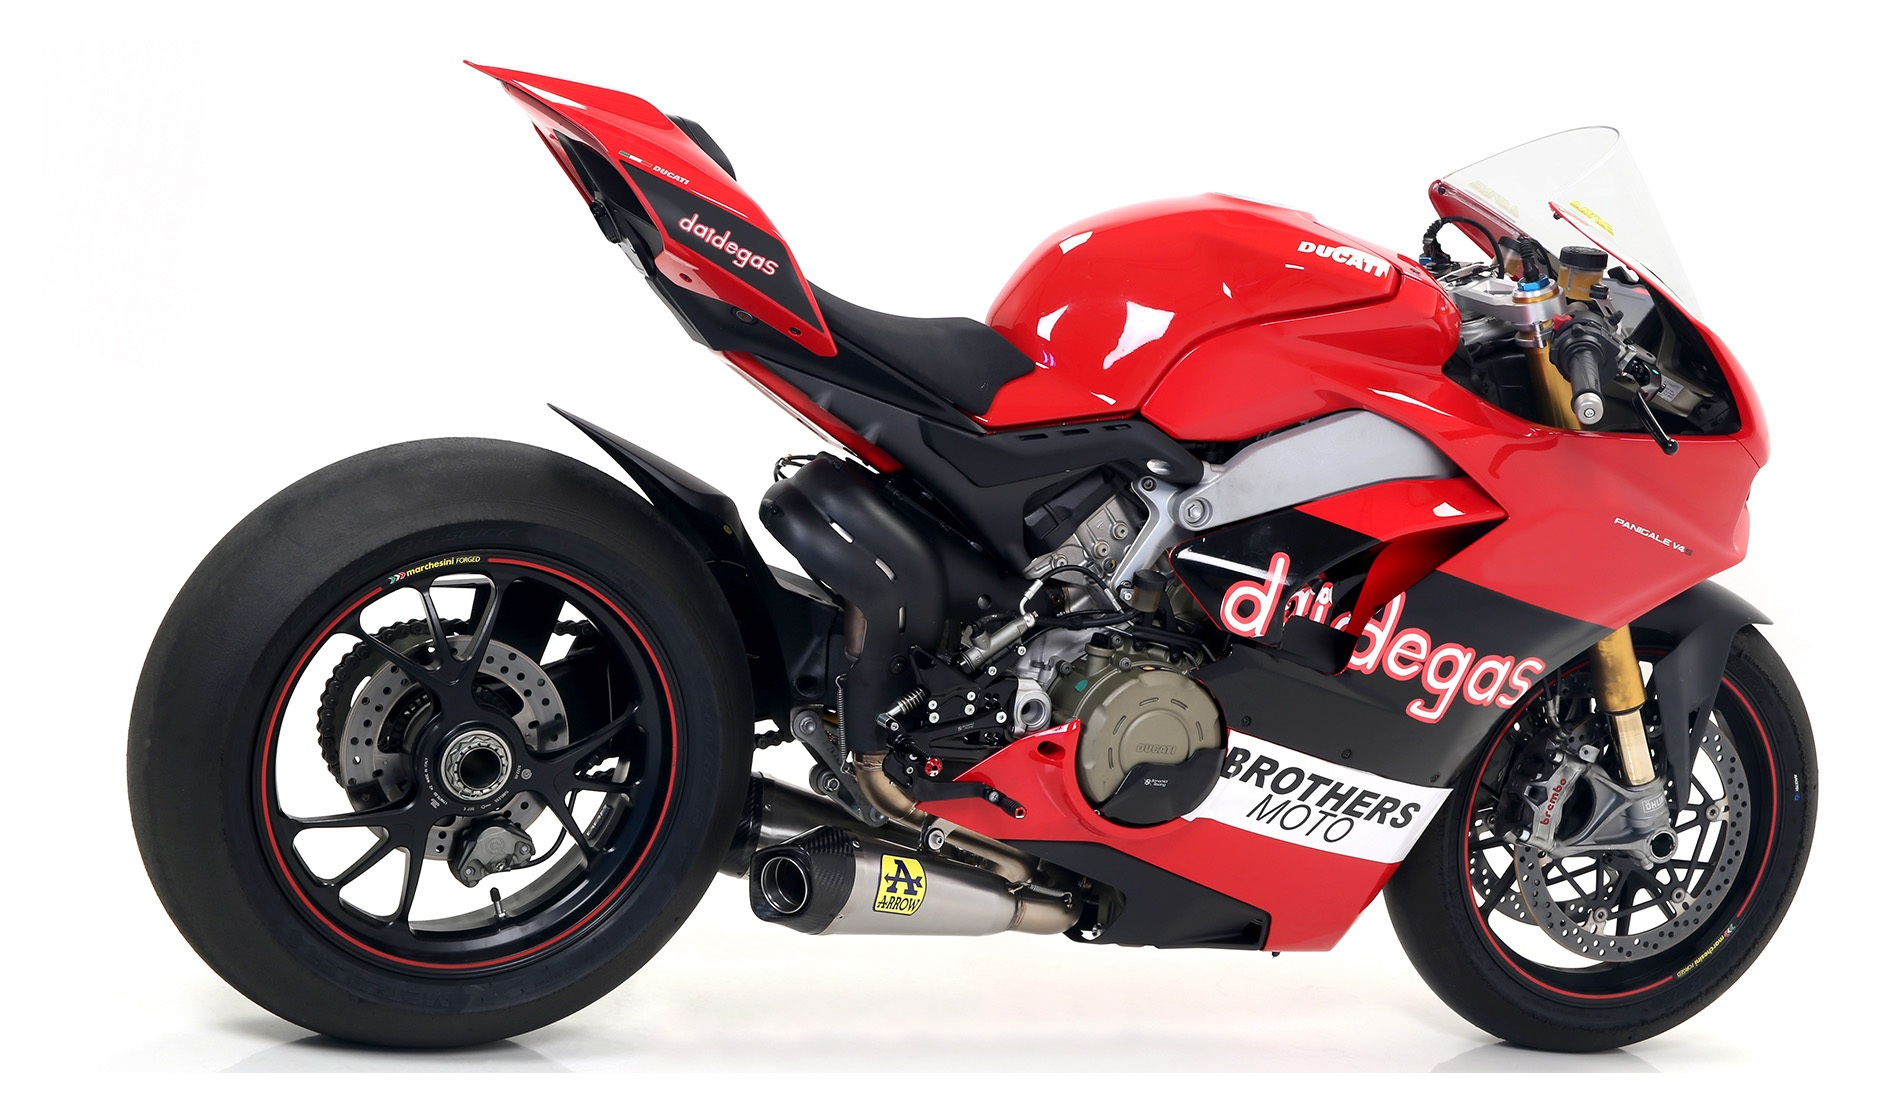 Arrow Works Slip On Exhaust Ducati Panigale V4 S 2018 2019 Cycle